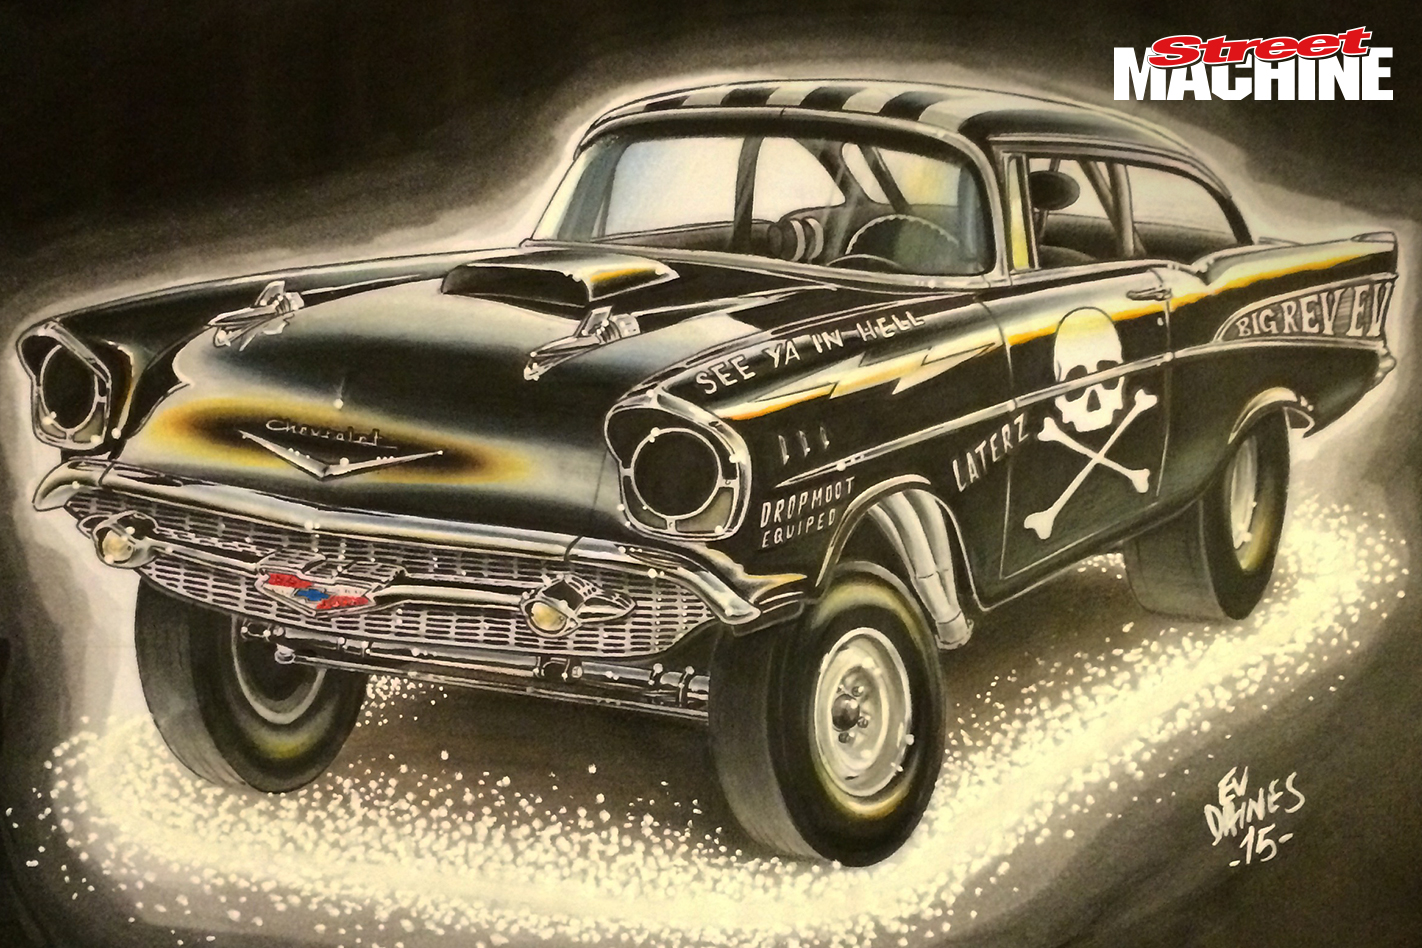 57 Chev Gasser Artwork